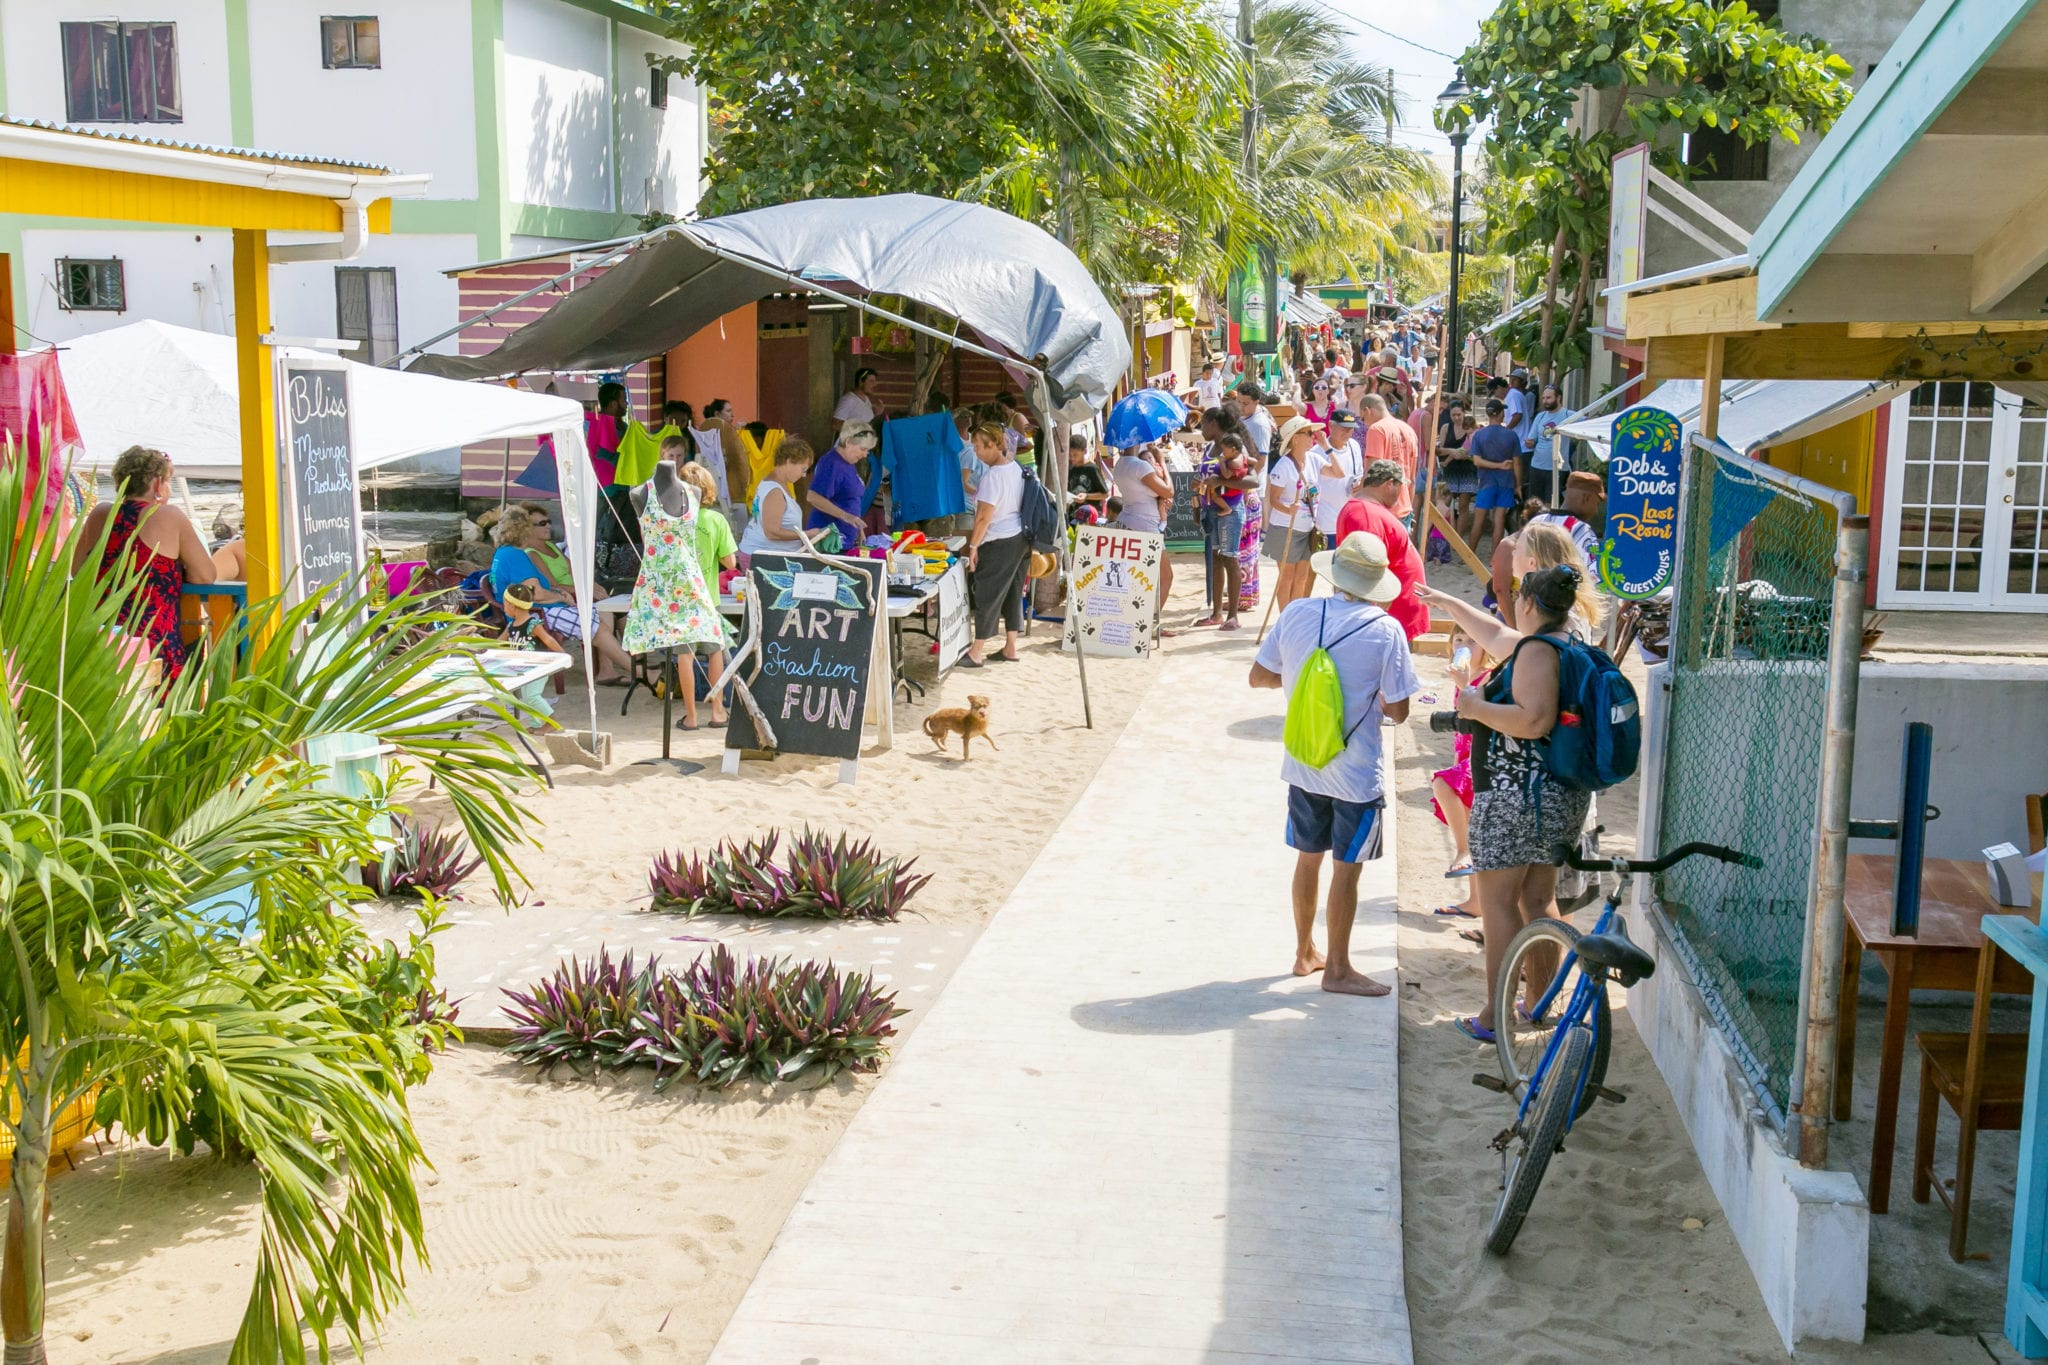 Caribbean Culture and Lifestyle: Placencia Sidewalk Art and Music Festival